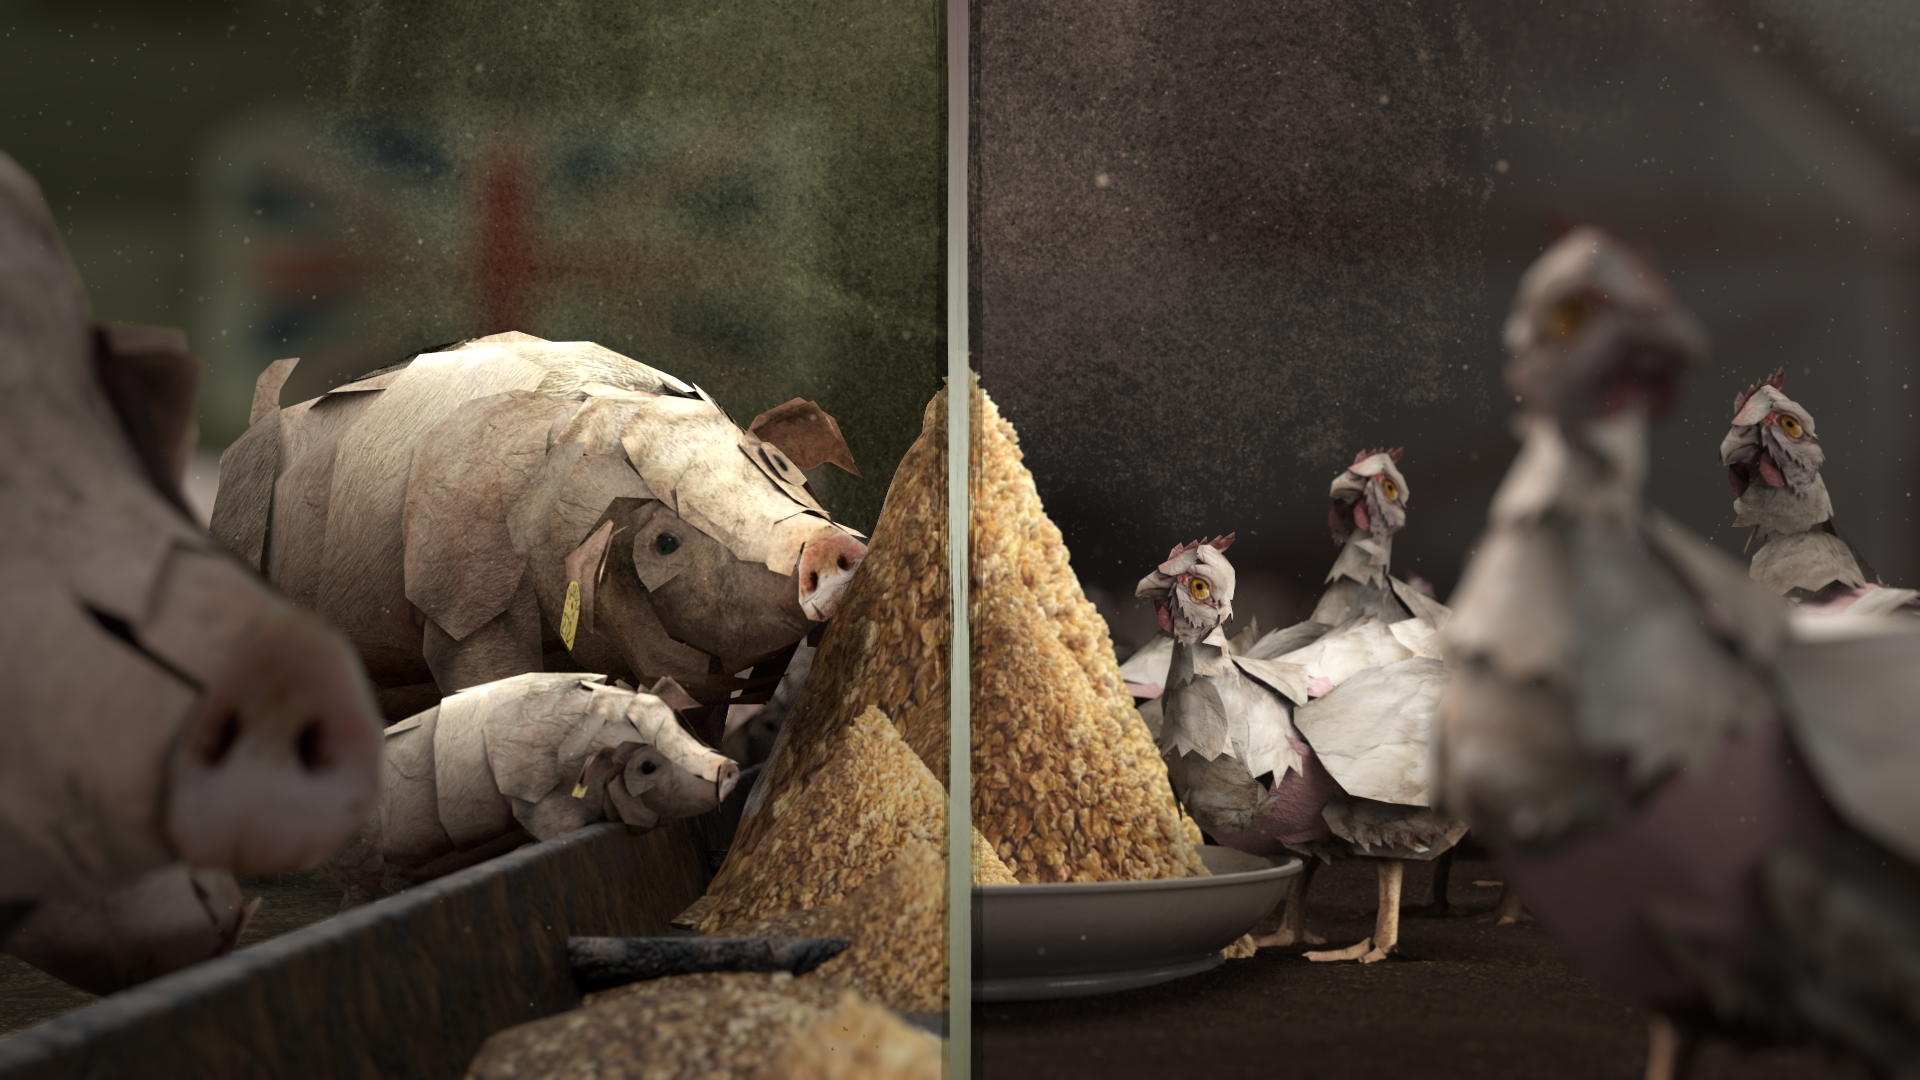 Still from Tesco's burning secret film, a split screen of pigs and chicken made out of paper cuttings, eating from piles of soya meal in the middle, with a British flag in the background of the pigs